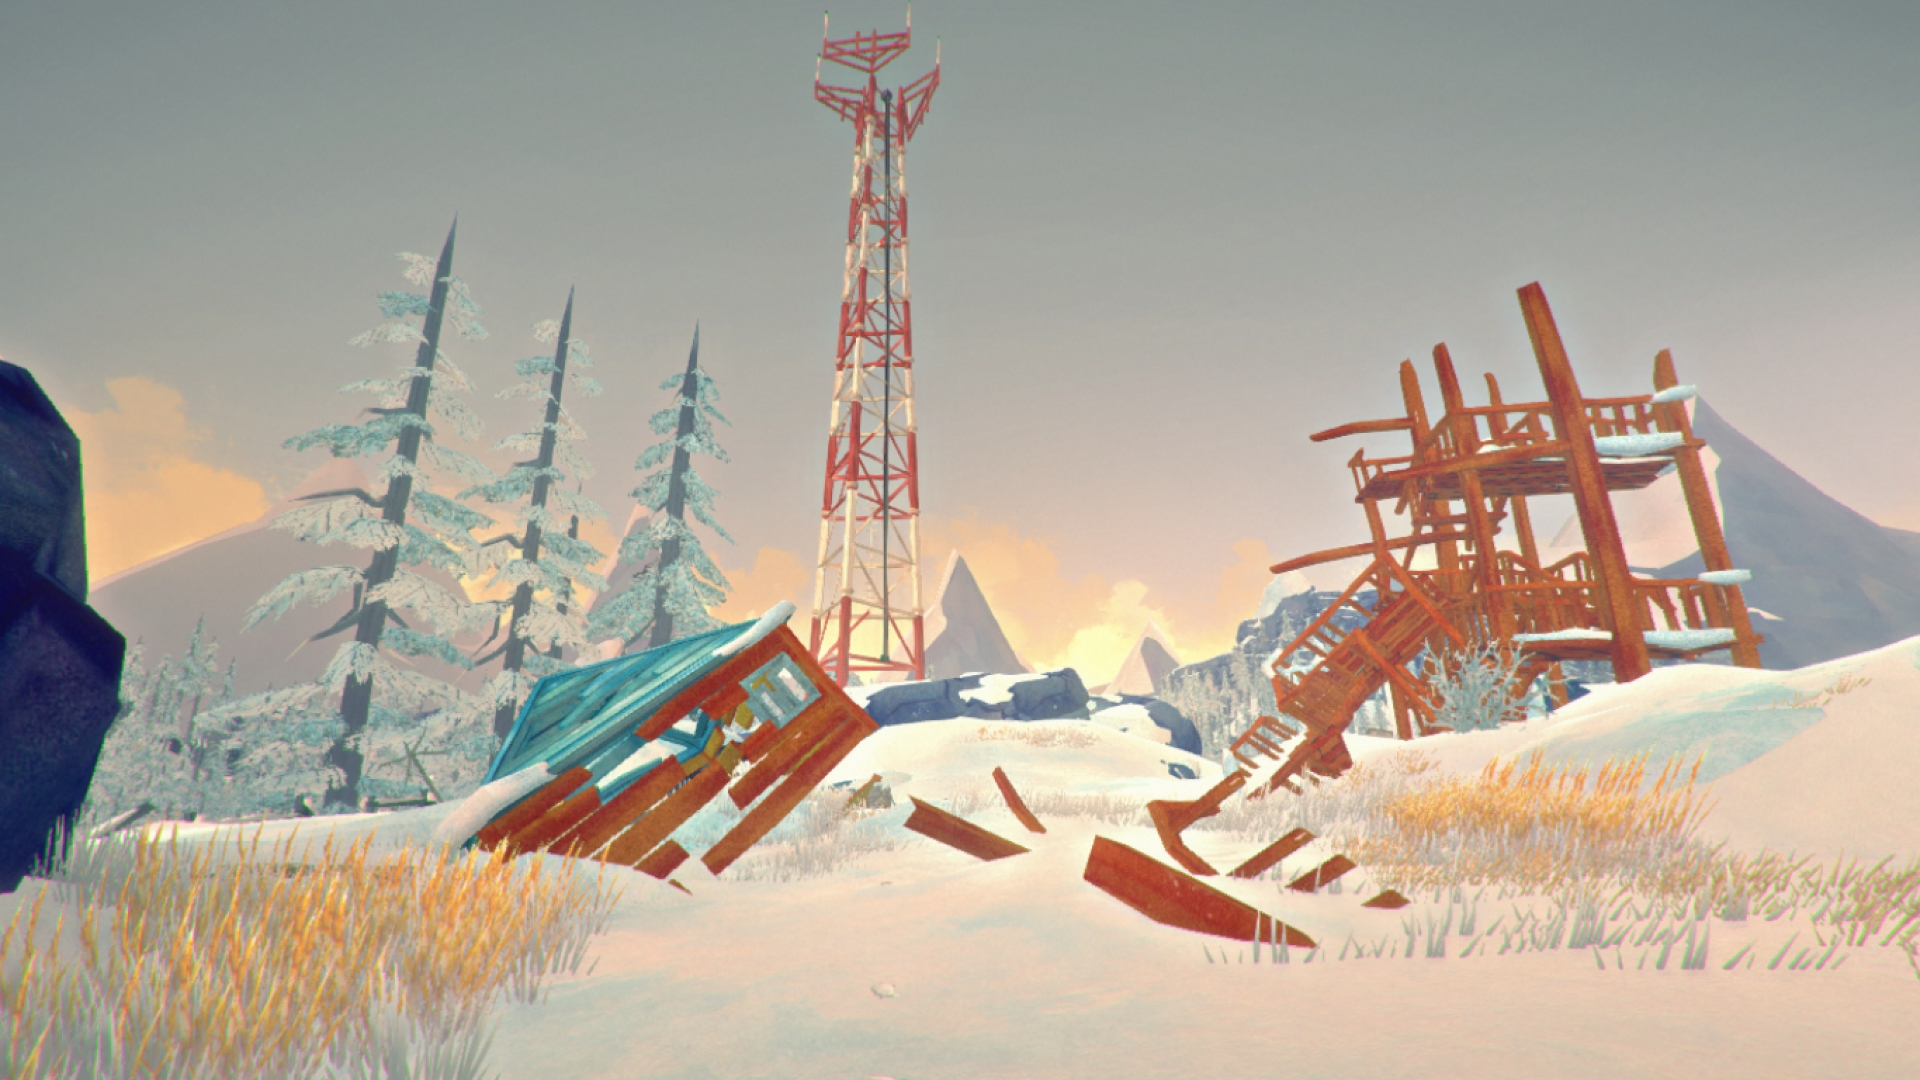 Steam Community  Guide  The Long Dark Survival guide by LMG